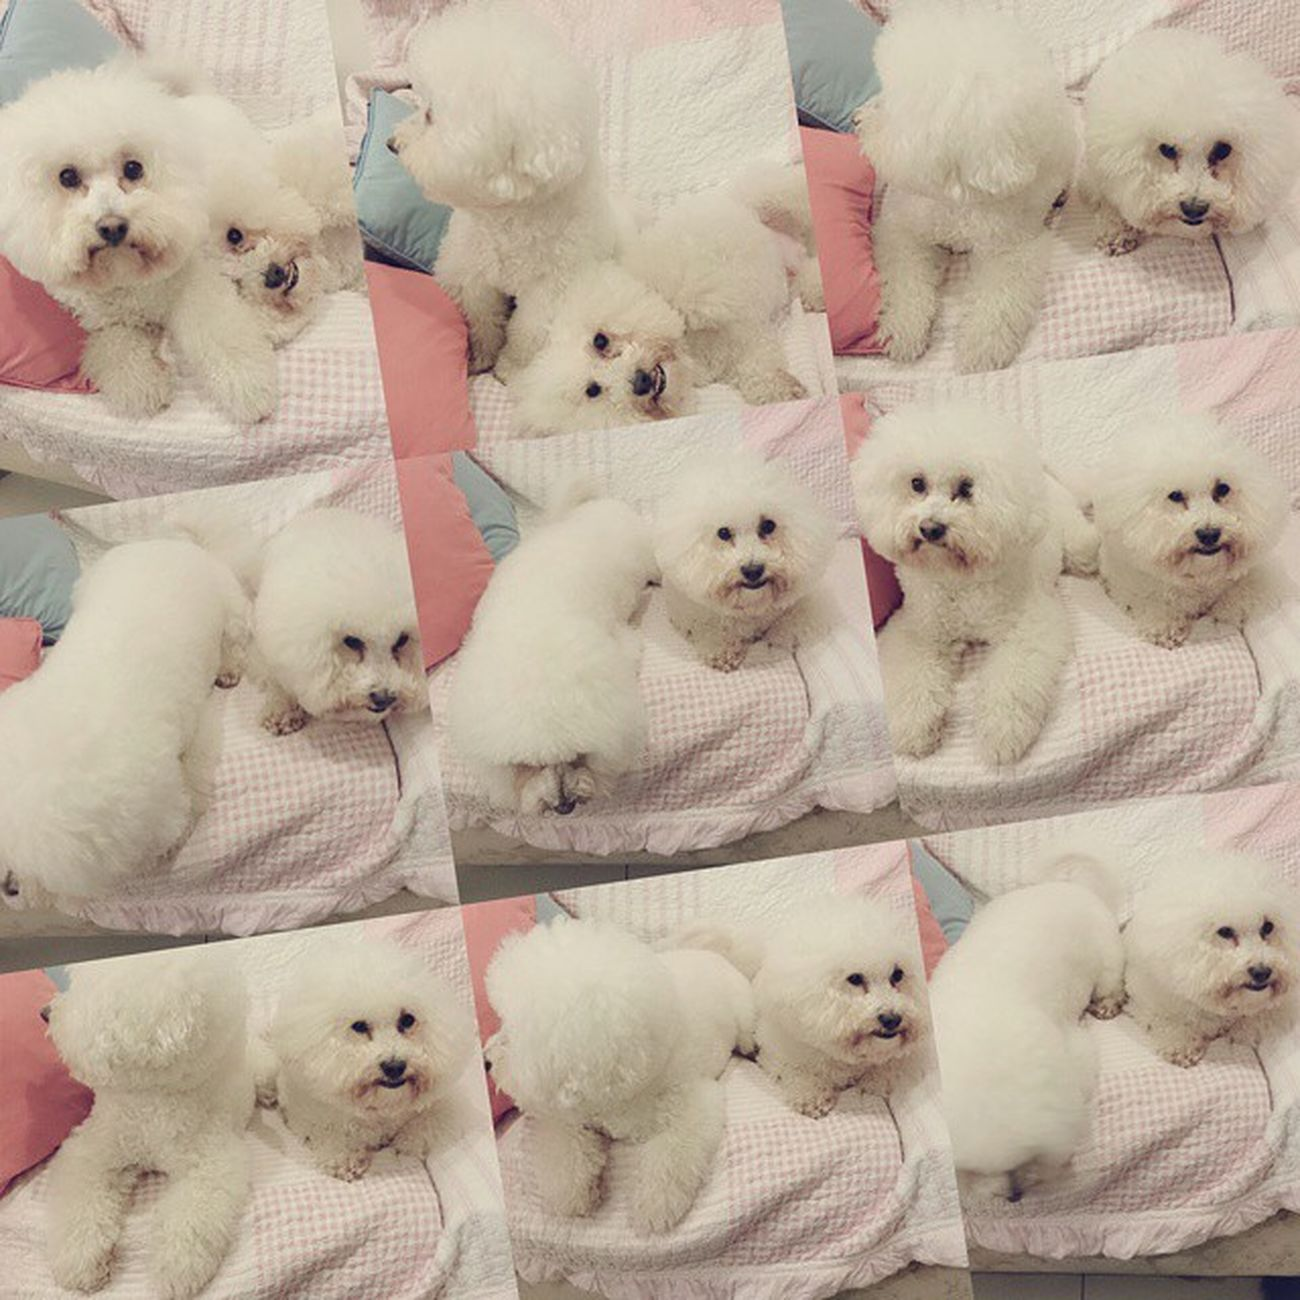 Tony和Lisa是兩坨棉花糖 Fluffy Cottoncandy Candyfloss Bichonfrise ビションフリーゼ